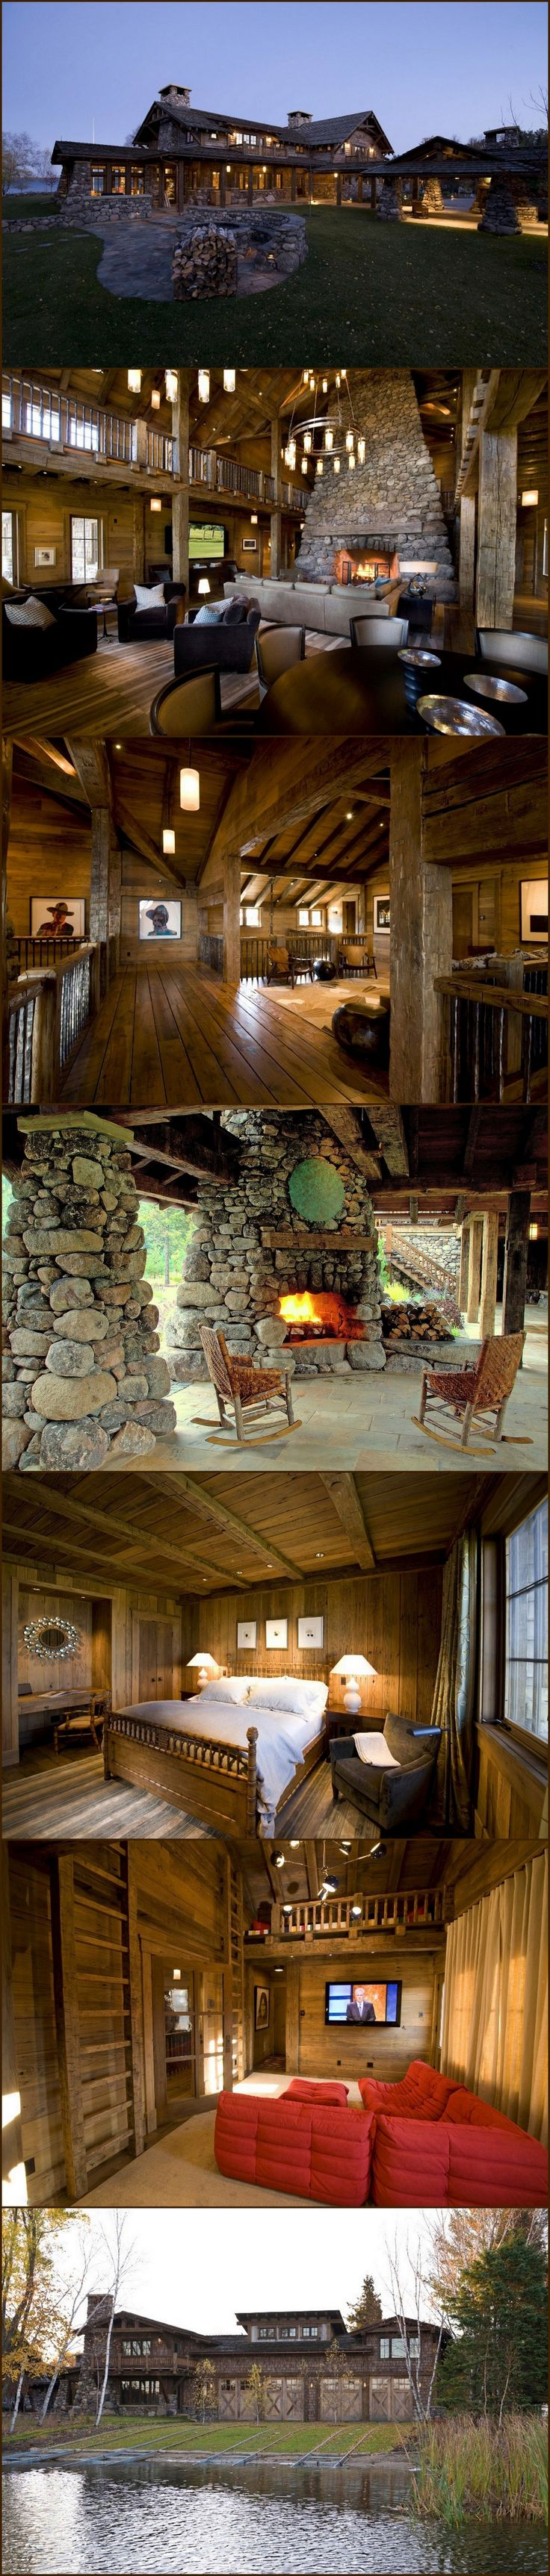 Minnesota Lake Lodge - I was apart of the building of this house. It was an awesome experience. The fireplace is the size of a small car!